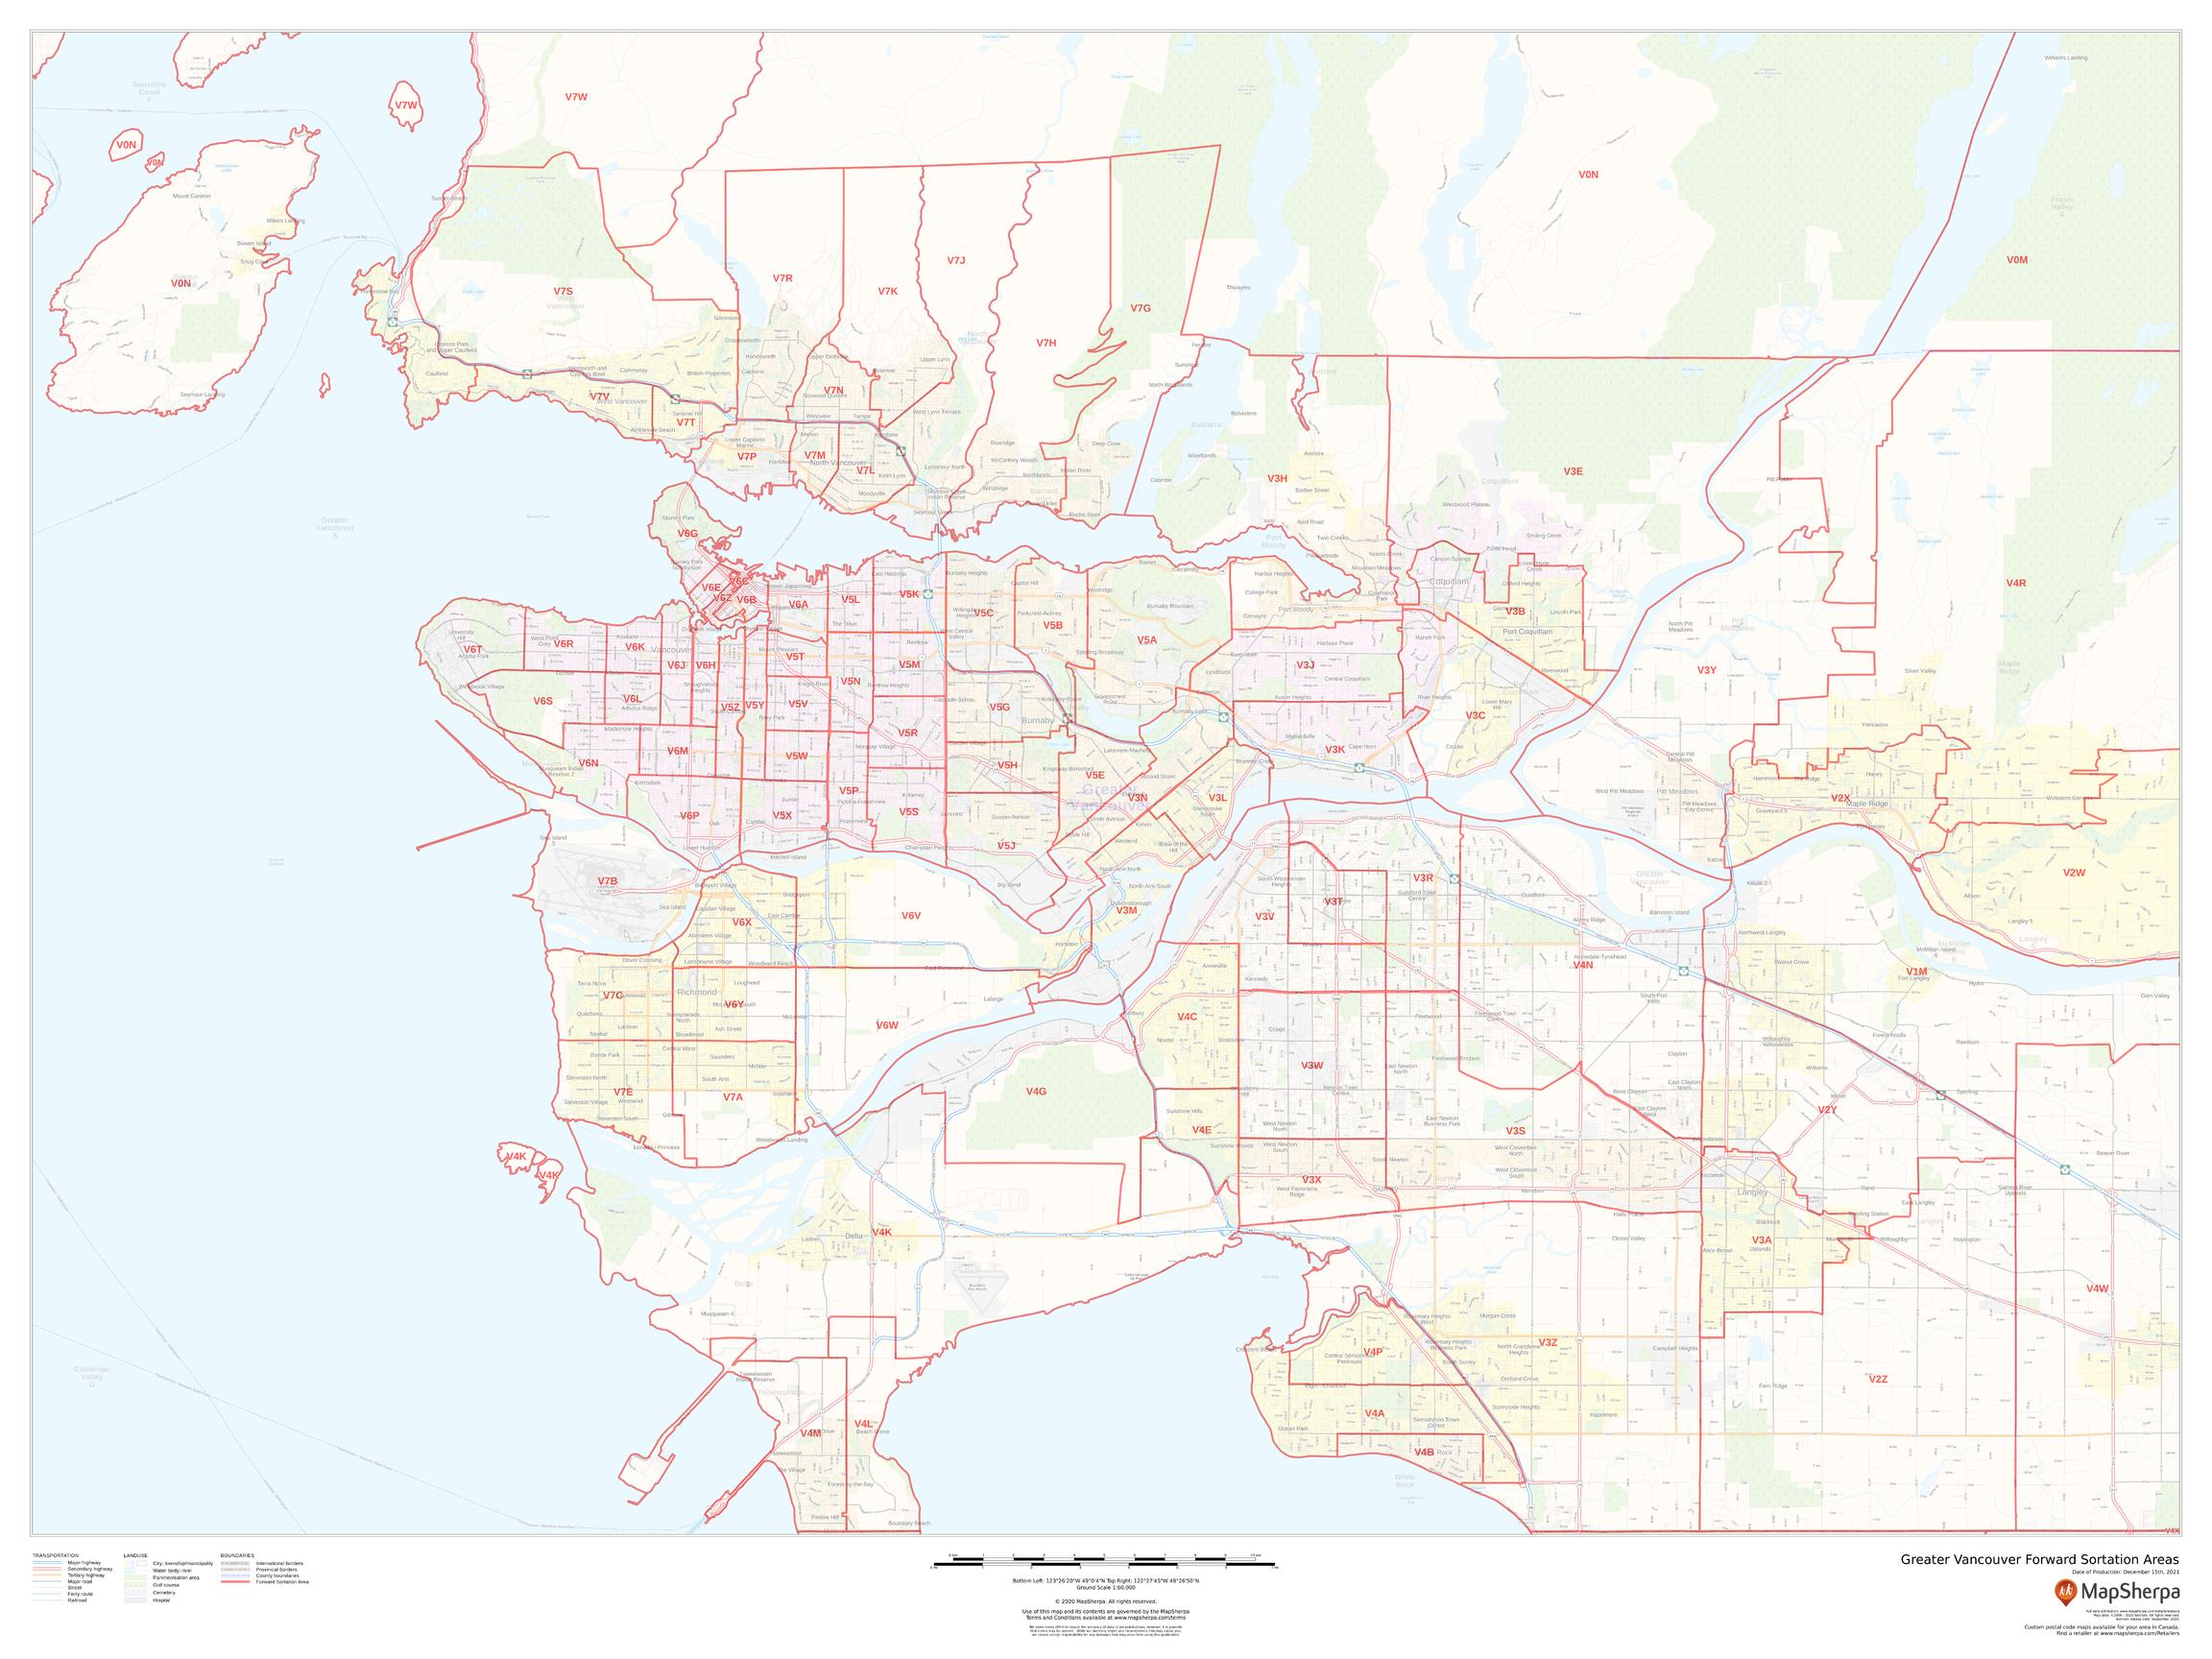 Greater Vancouver Postal Code Forward Sortation Areas